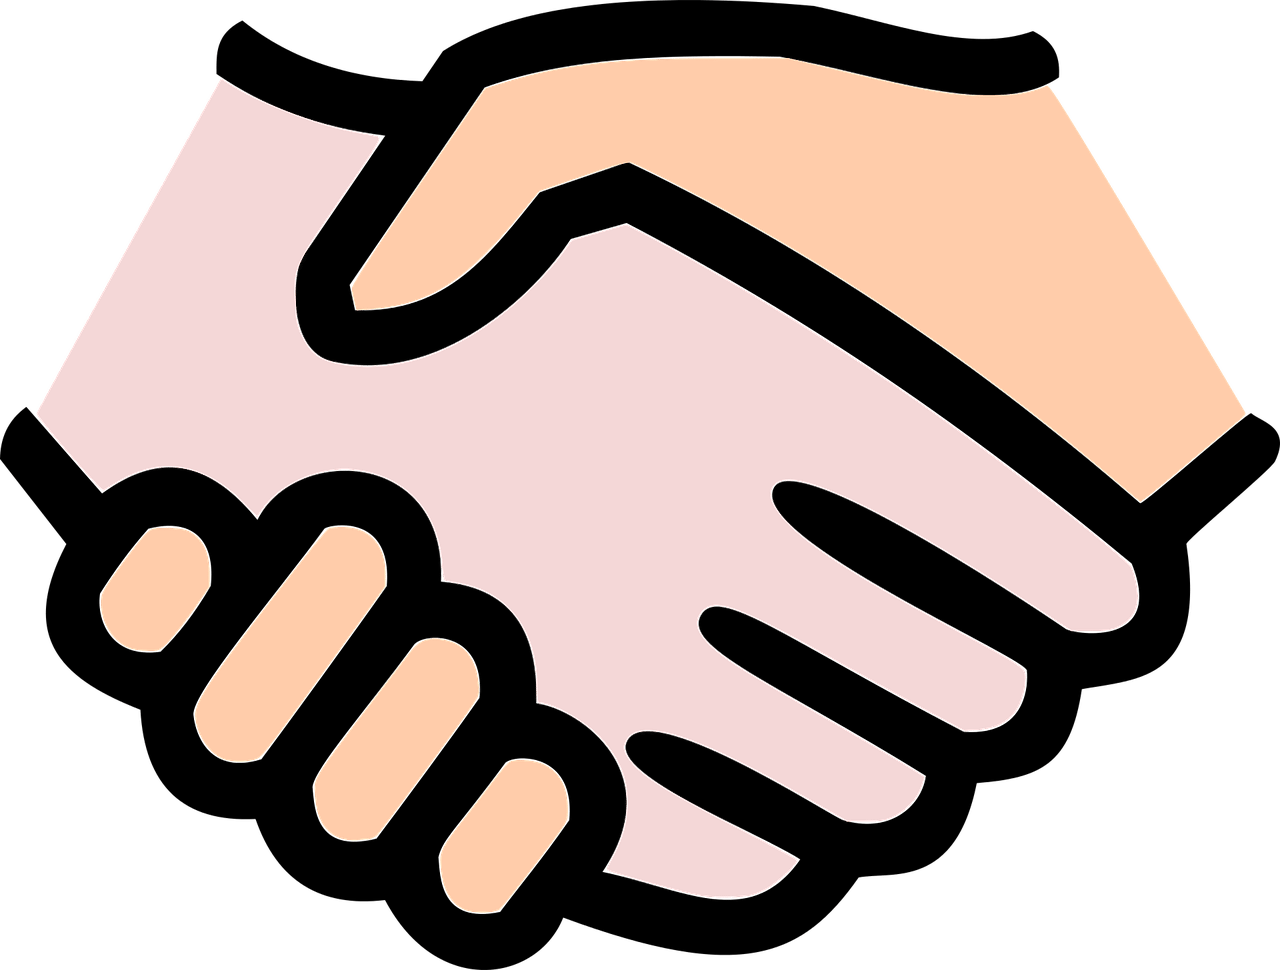 Handshake clipart conflict. Avoiding the pitfalls of